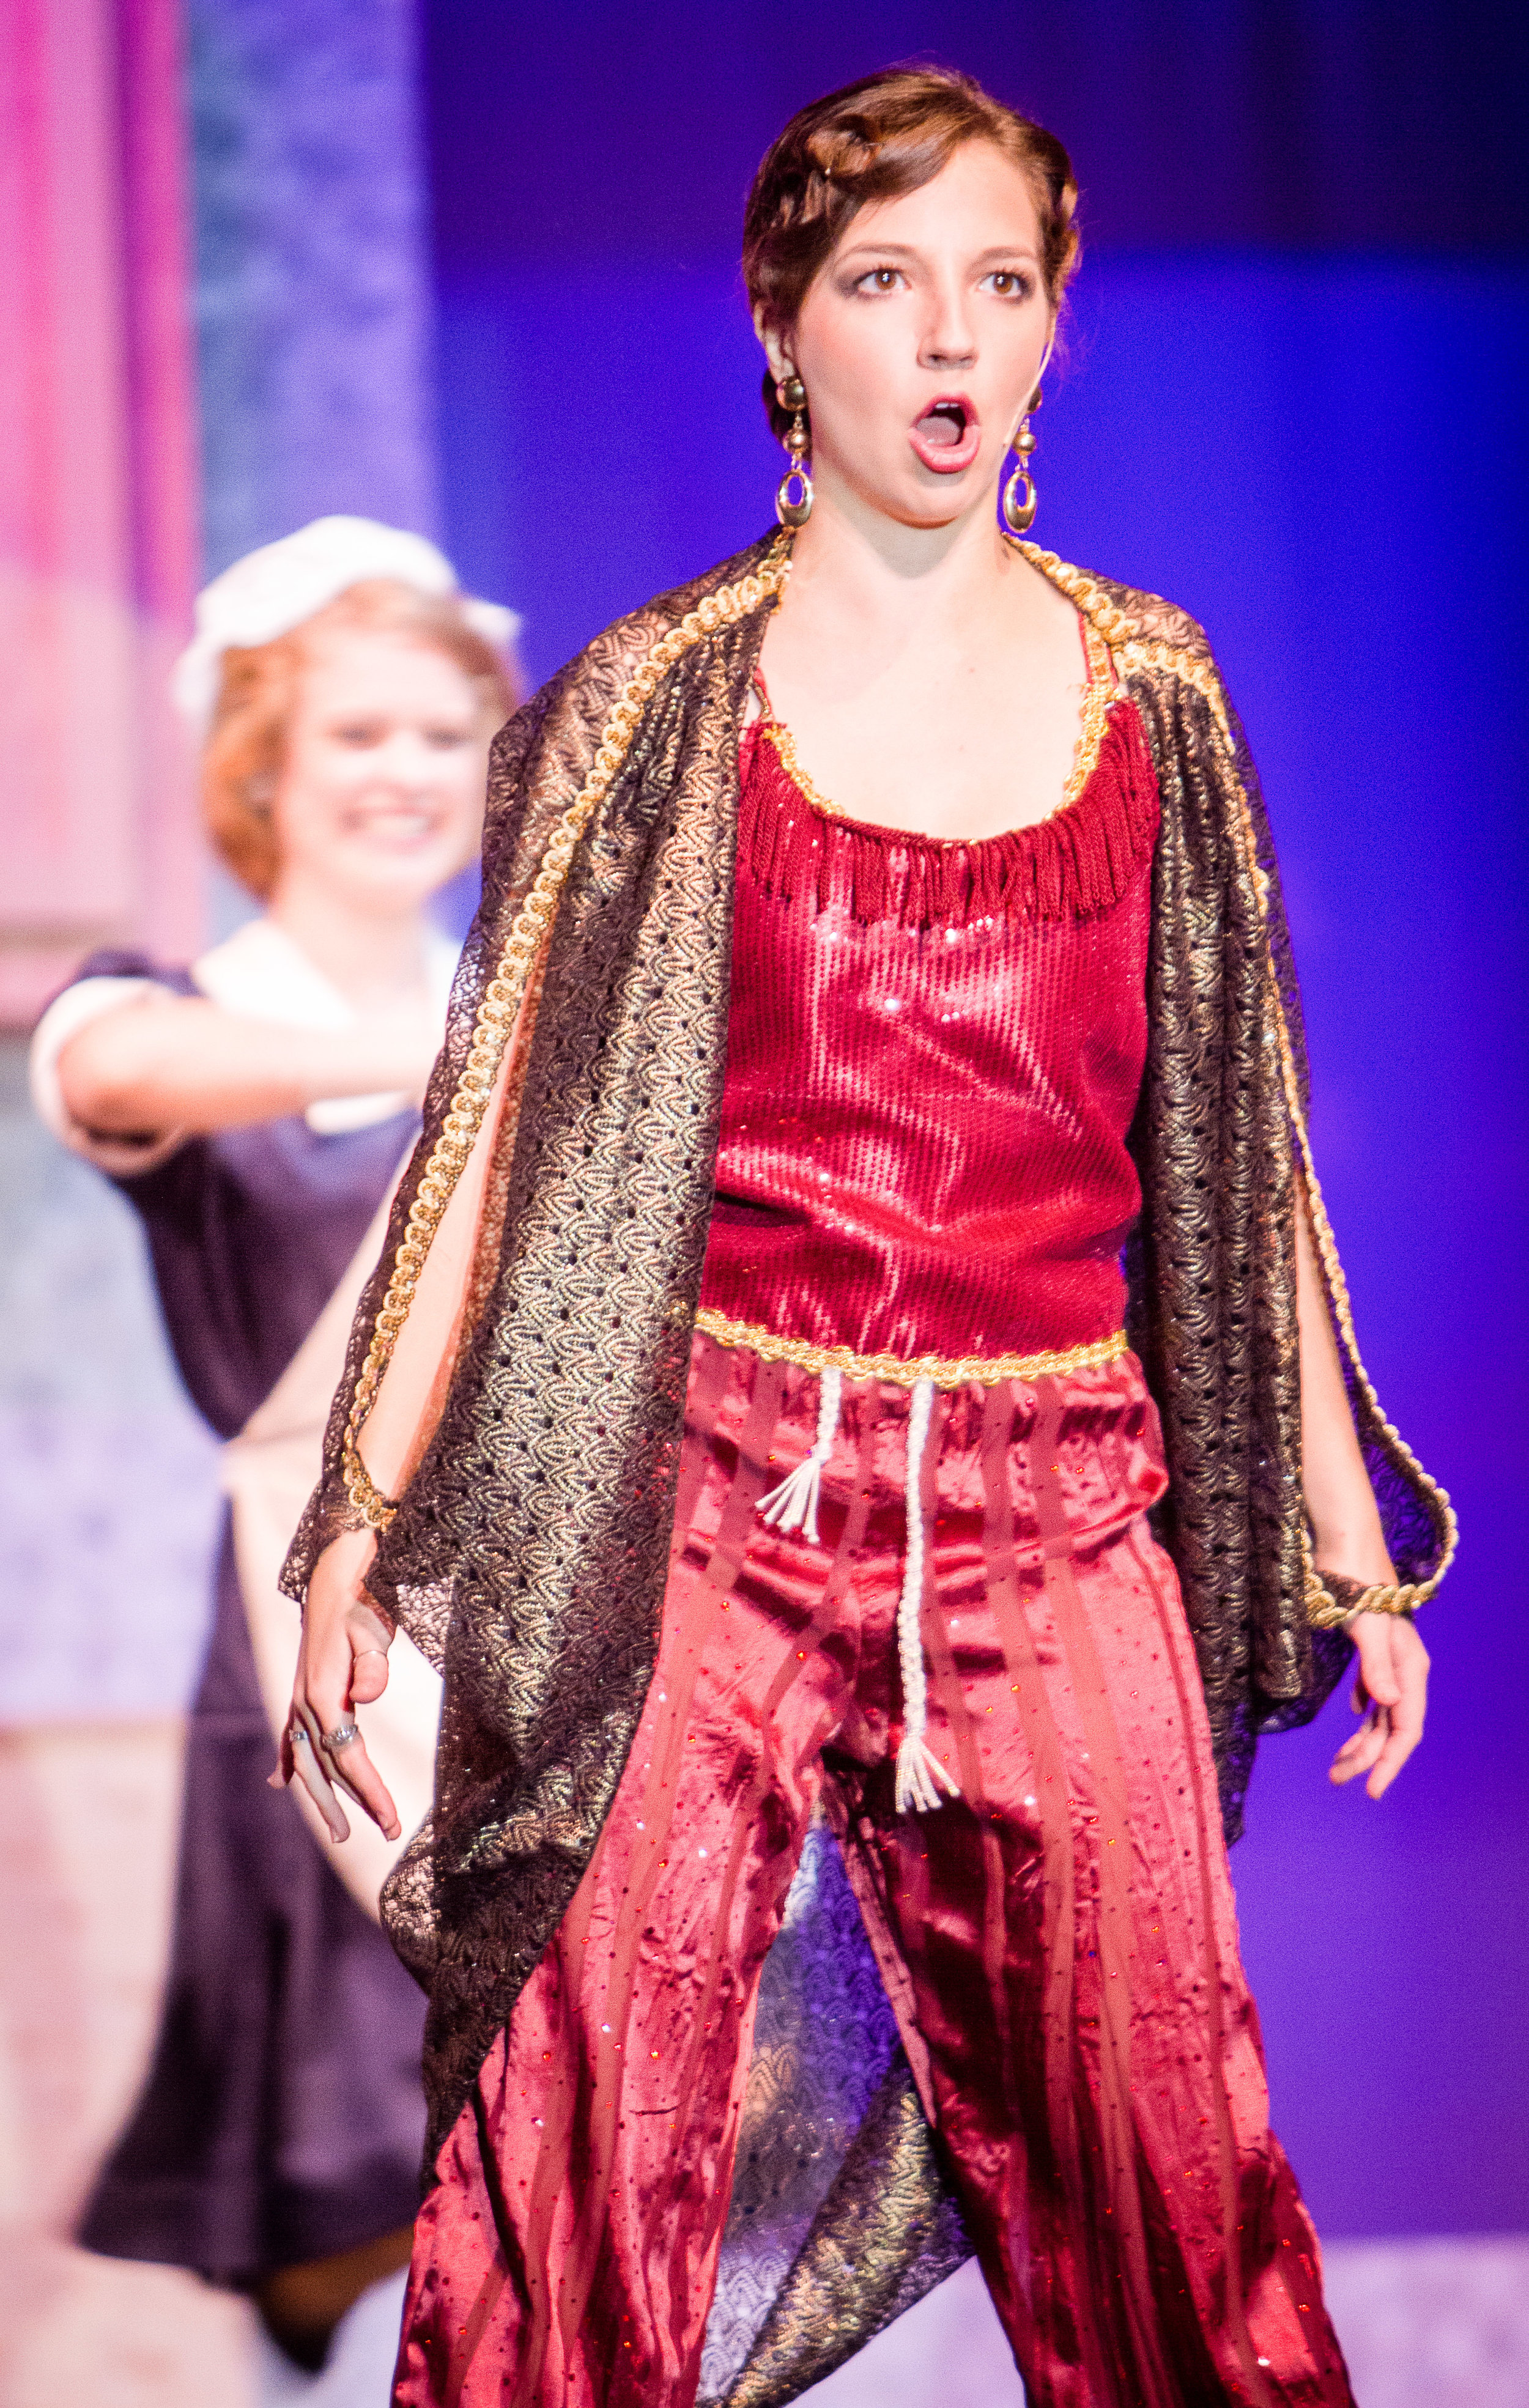 Senior Sarah Nadreau as the Drowsy Chaperone. Janik Emmendorfer | Photographer